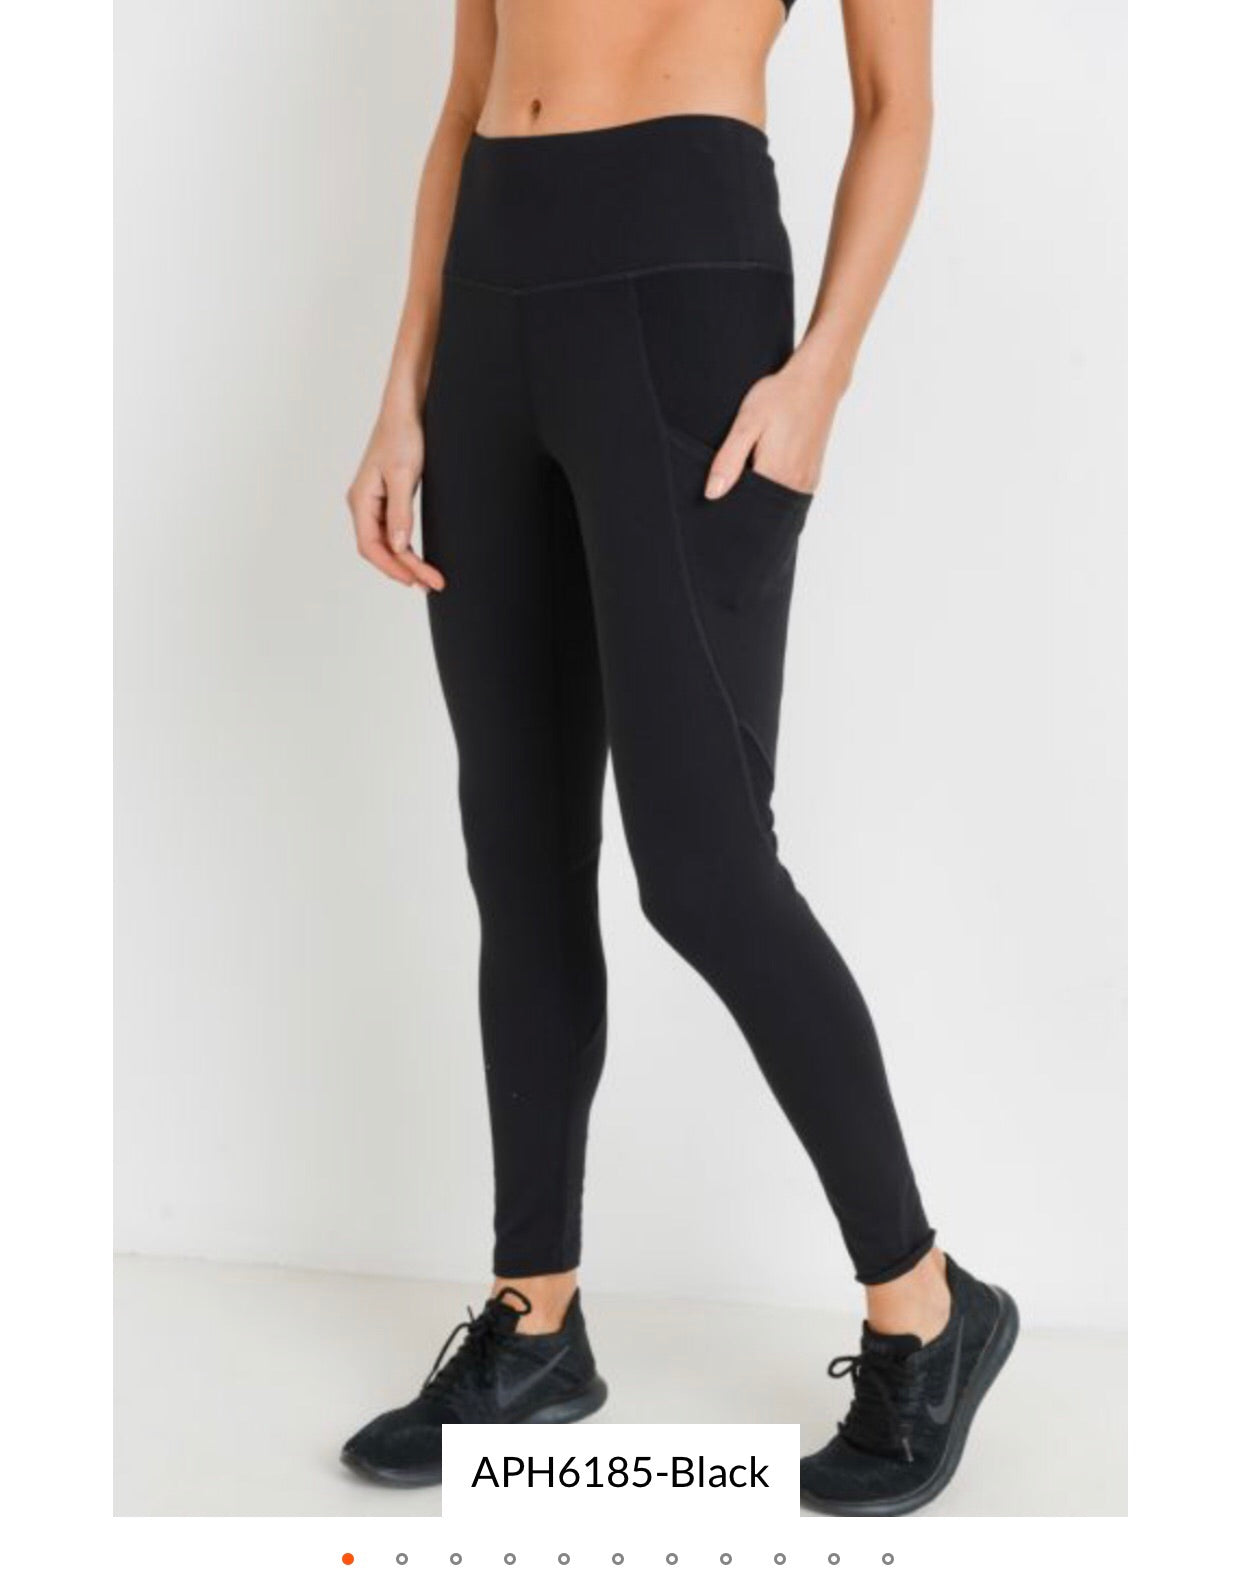 Ribbed and Smooth high waist legging